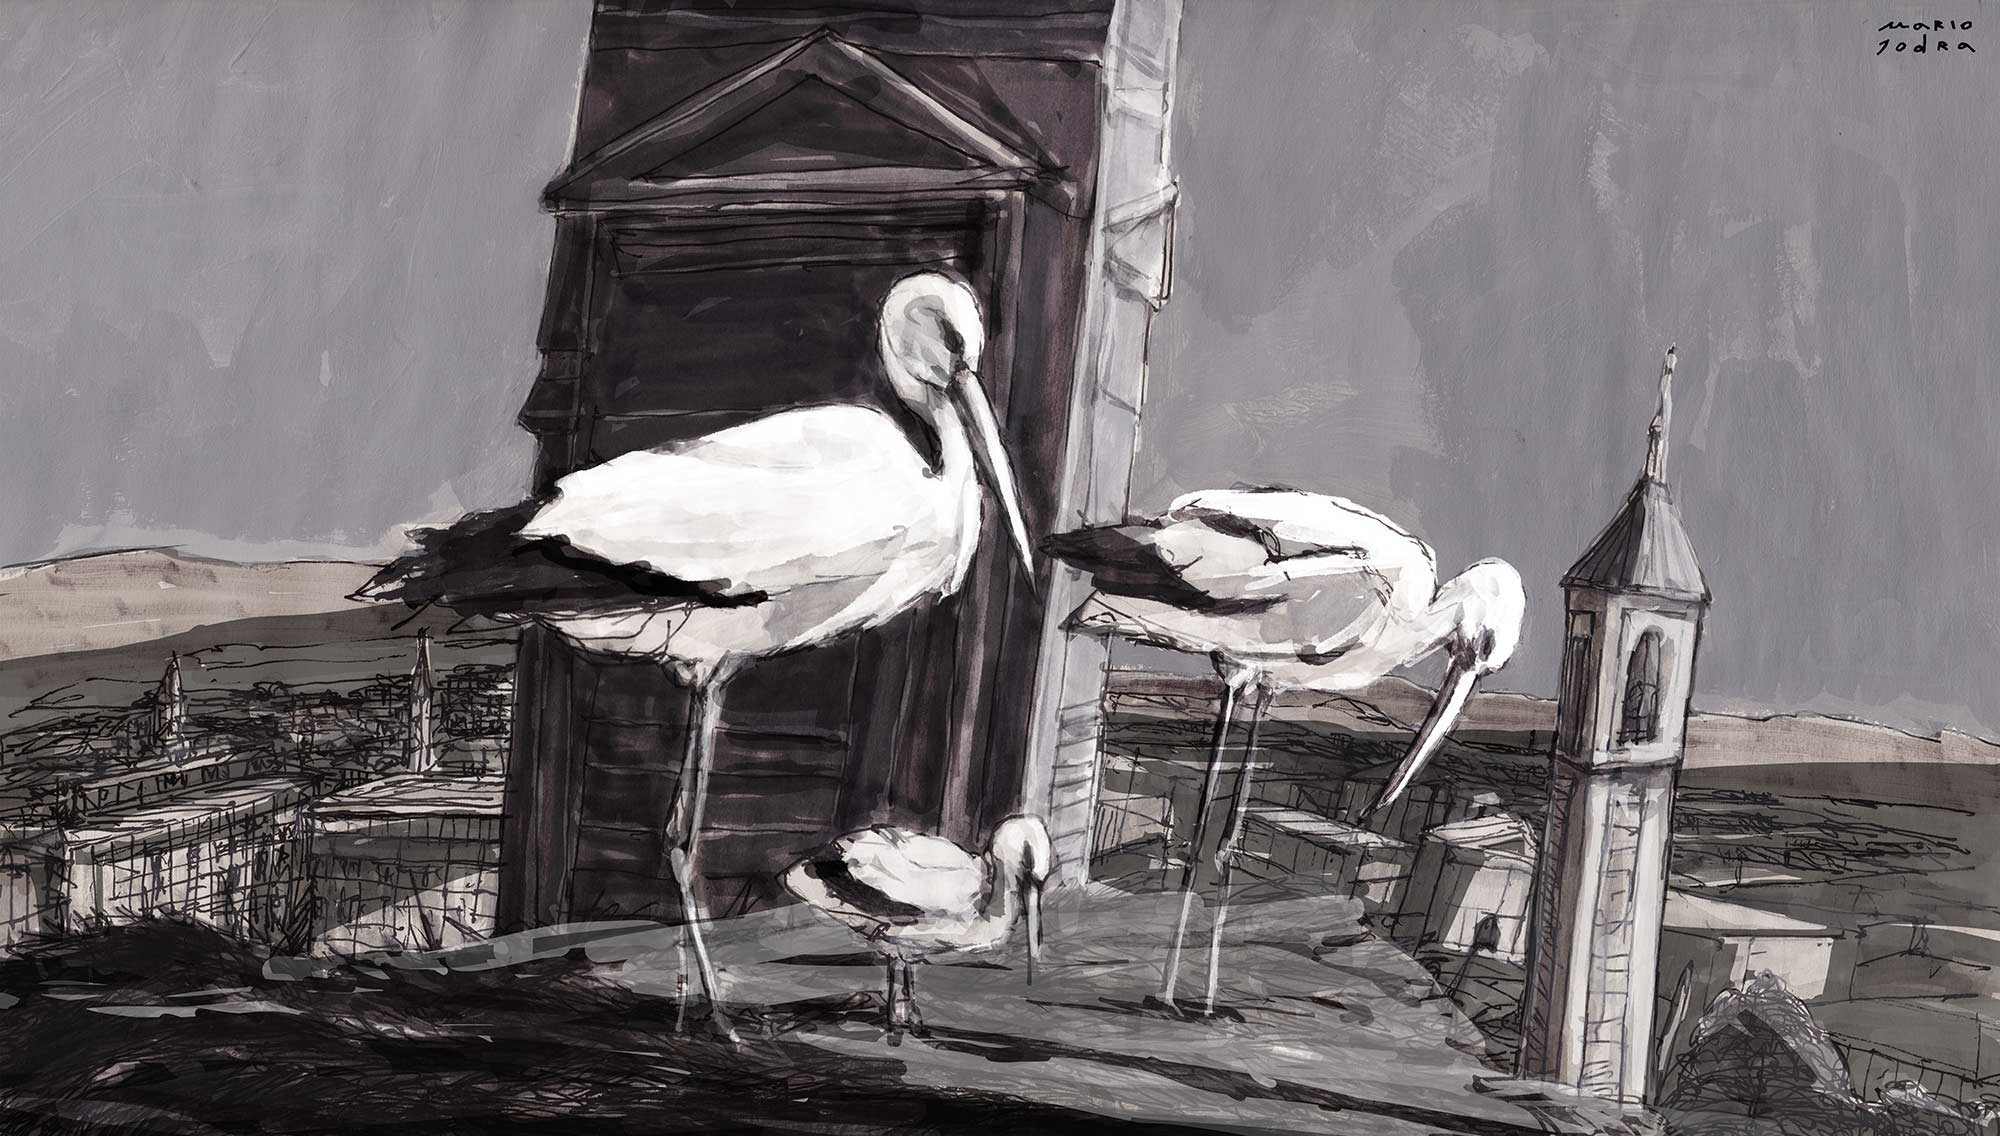 Mario Jodra illustration - White storks. Traditional Mixed Media & Digital